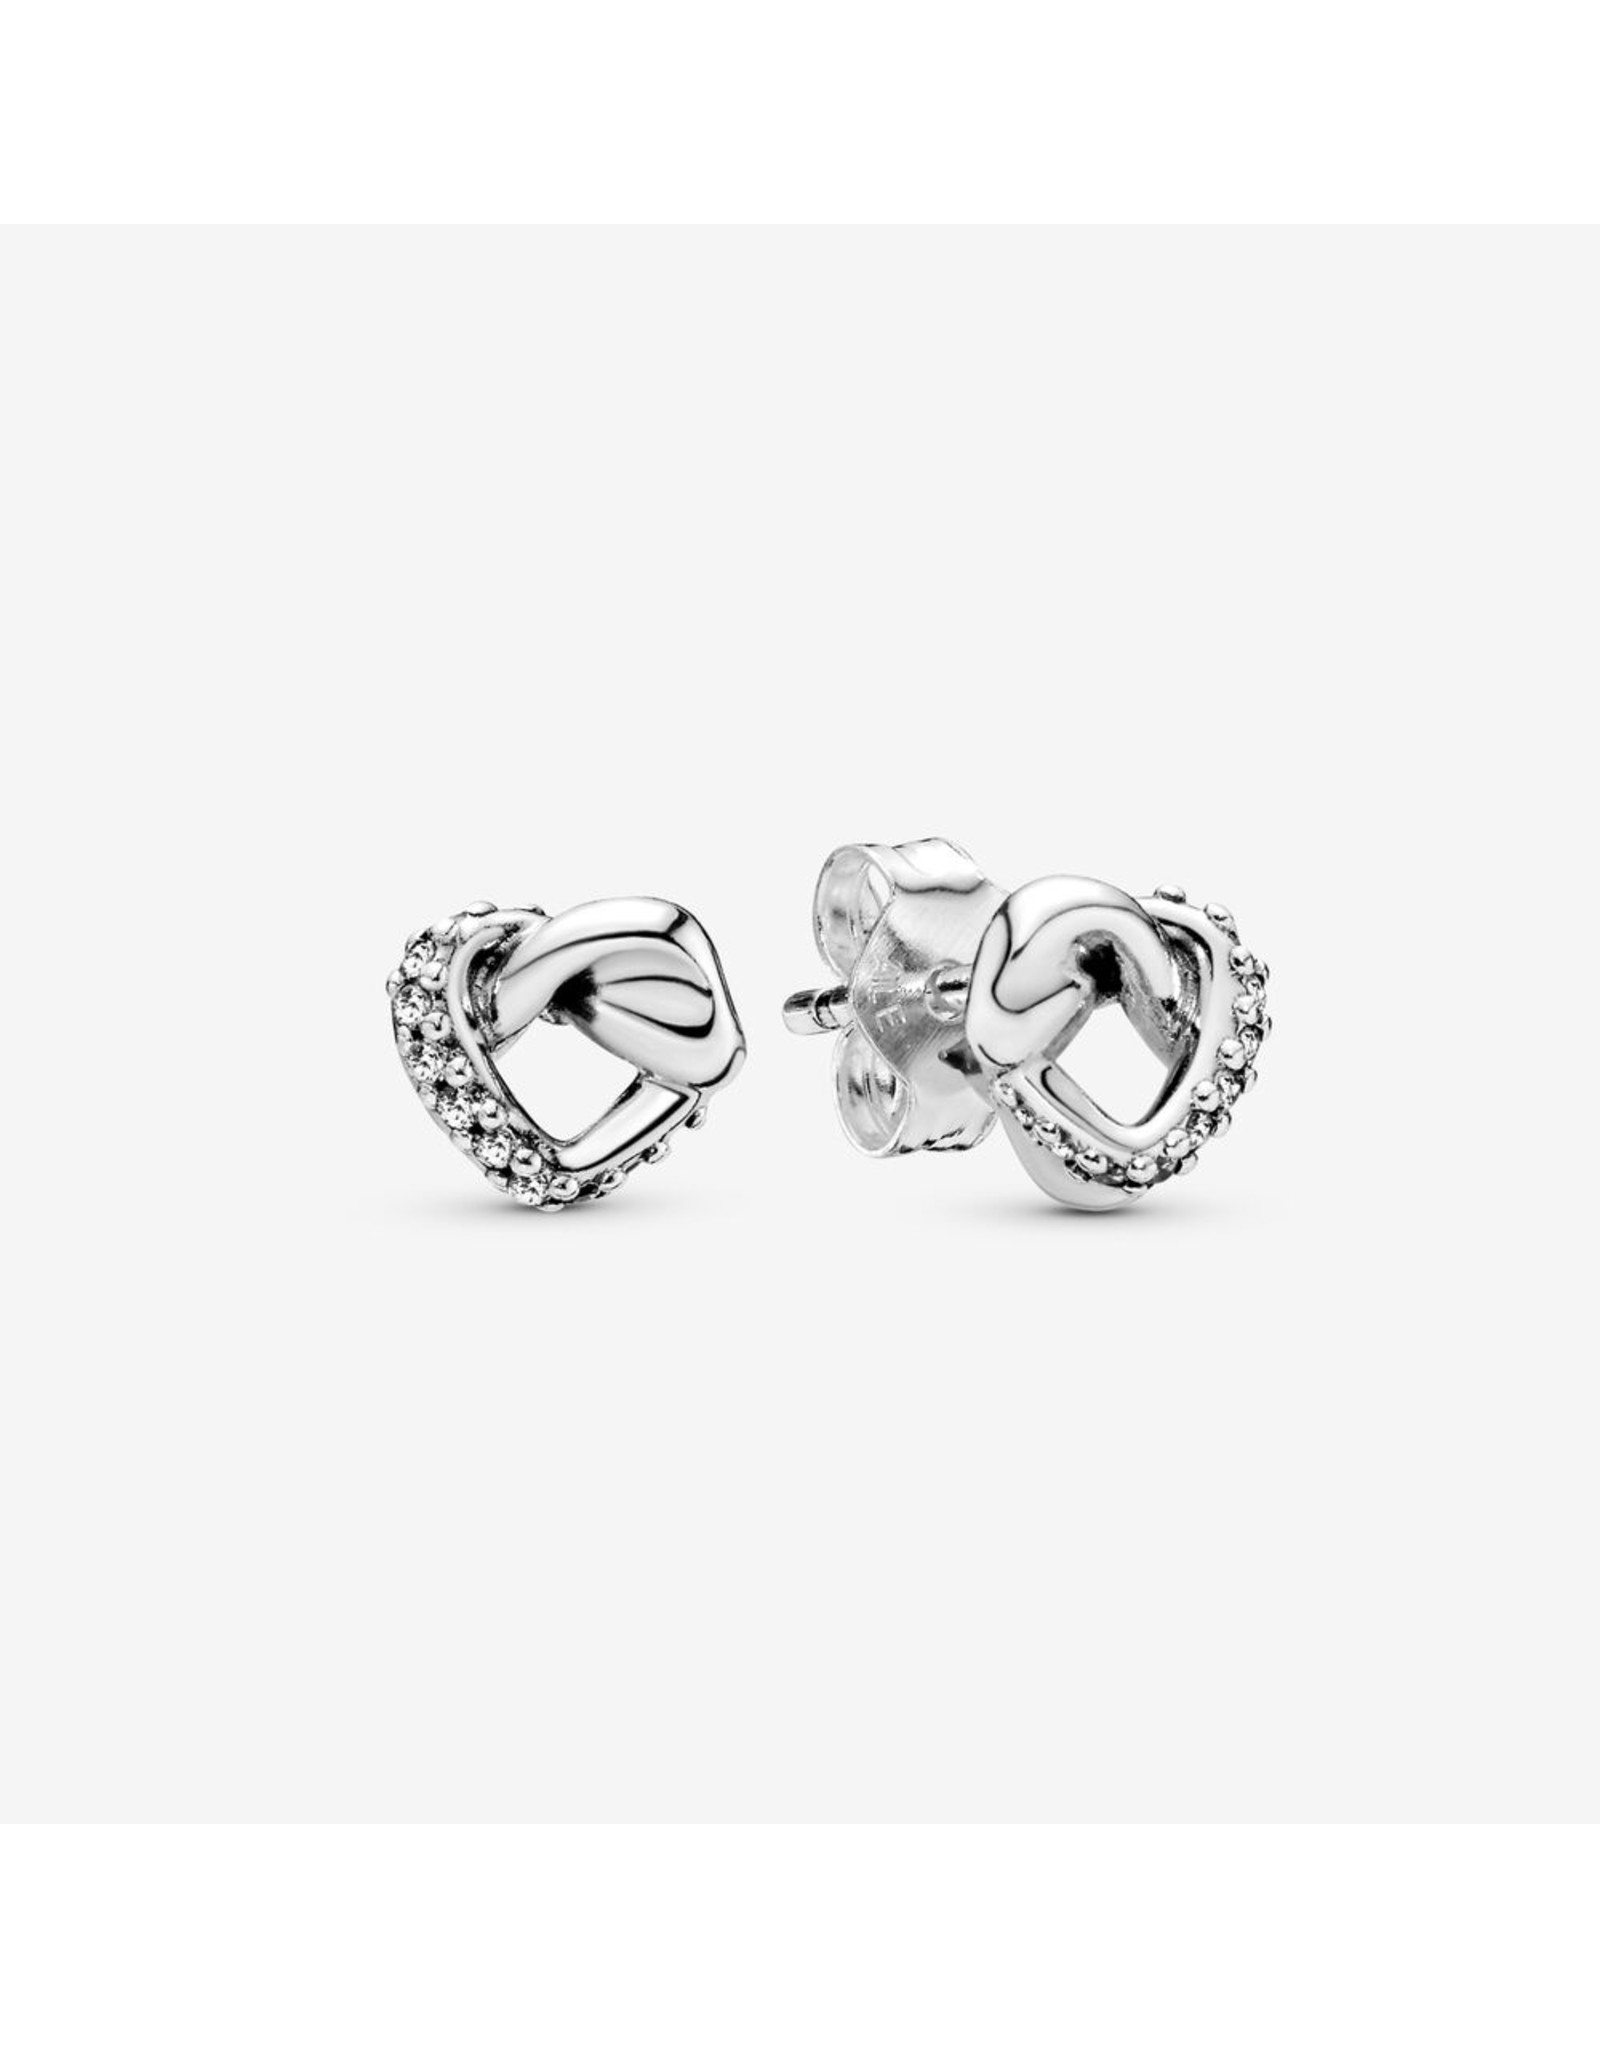 Pandora Pandora Earrings,298019CZ, Knotted Hearts Silver Stud earrings with Clear CZ